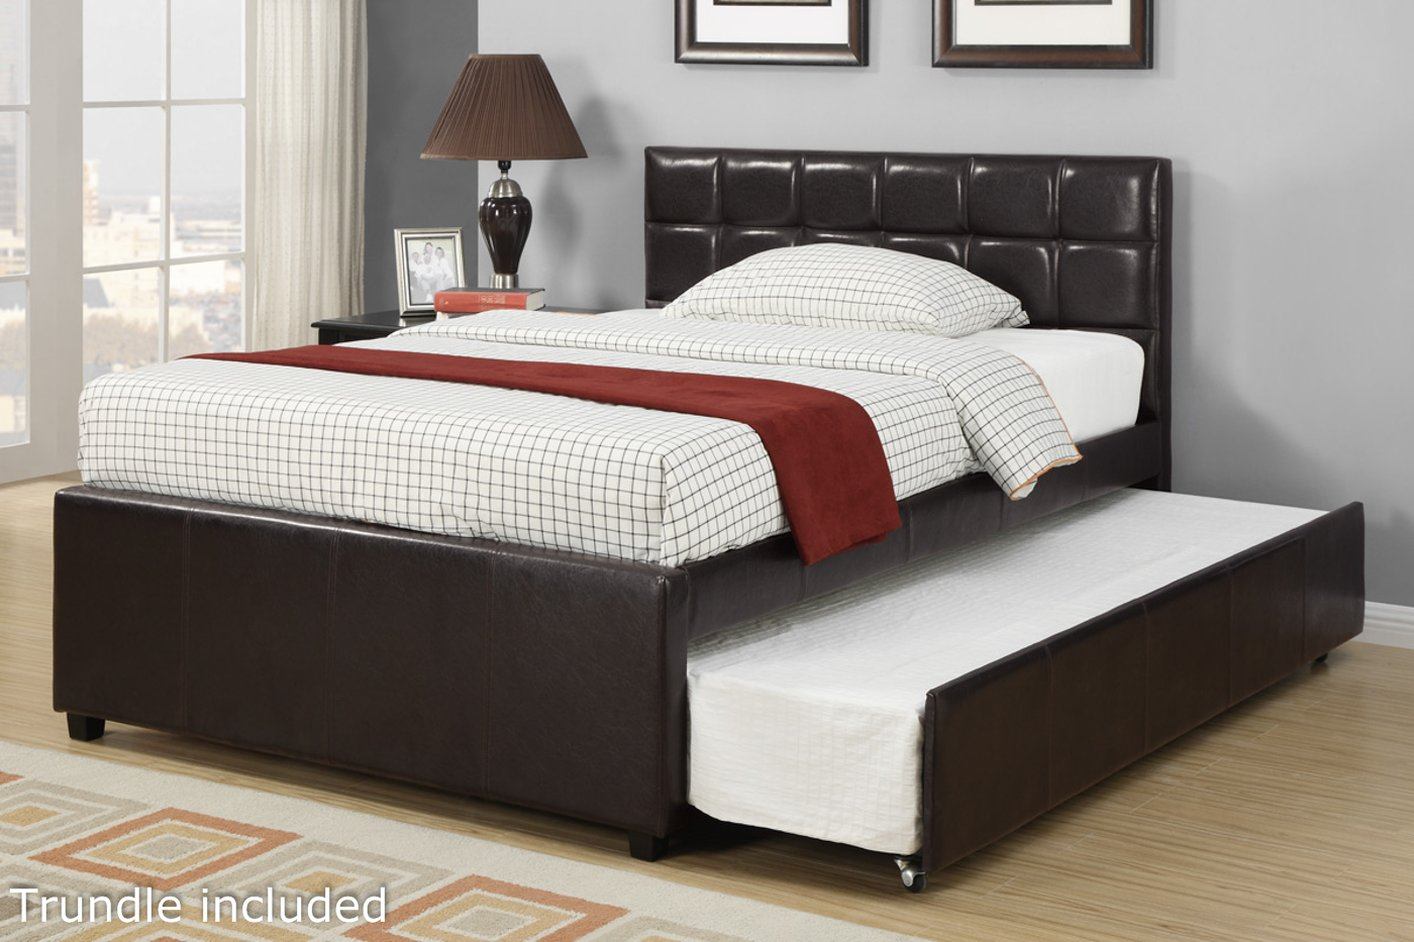 Matrimonio Bed Size : Hafwen full size bed with trundle steal a sofa furniture